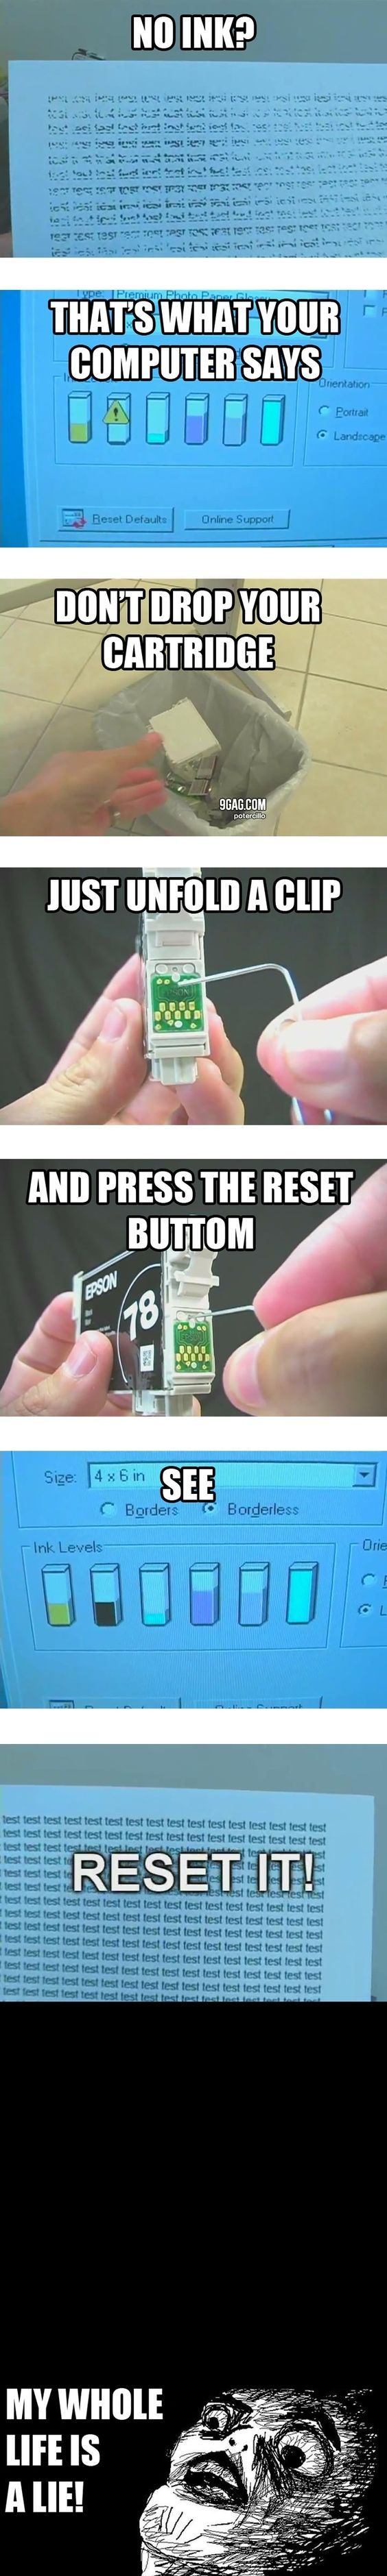 """With Canon cartridges, you just press and hold the """"Stop/Reset"""" button for five seconds when it says you're out of ink.  You need to be sure to remove the cartridge when it's actually empty, otherwise it could damage your printer.  Also, don't run maintenance when a cartridge is empty.  Once you replace it, the printer will begin monitoring ink levels again."""